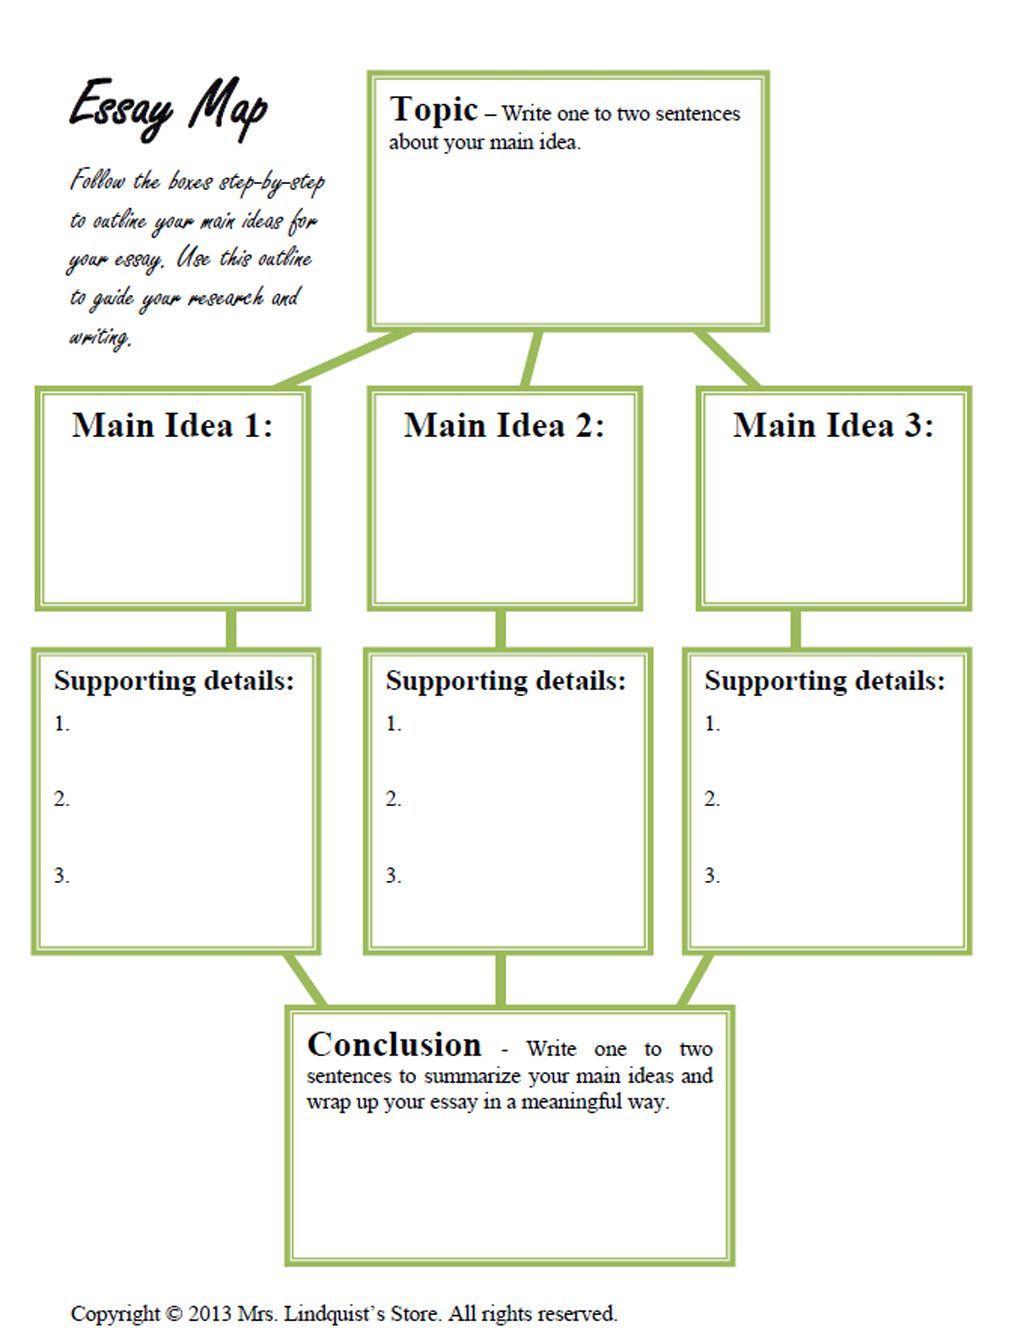 Using Graphic Organizers And Rubrics To Aid Students With Expository Persuasive Writing